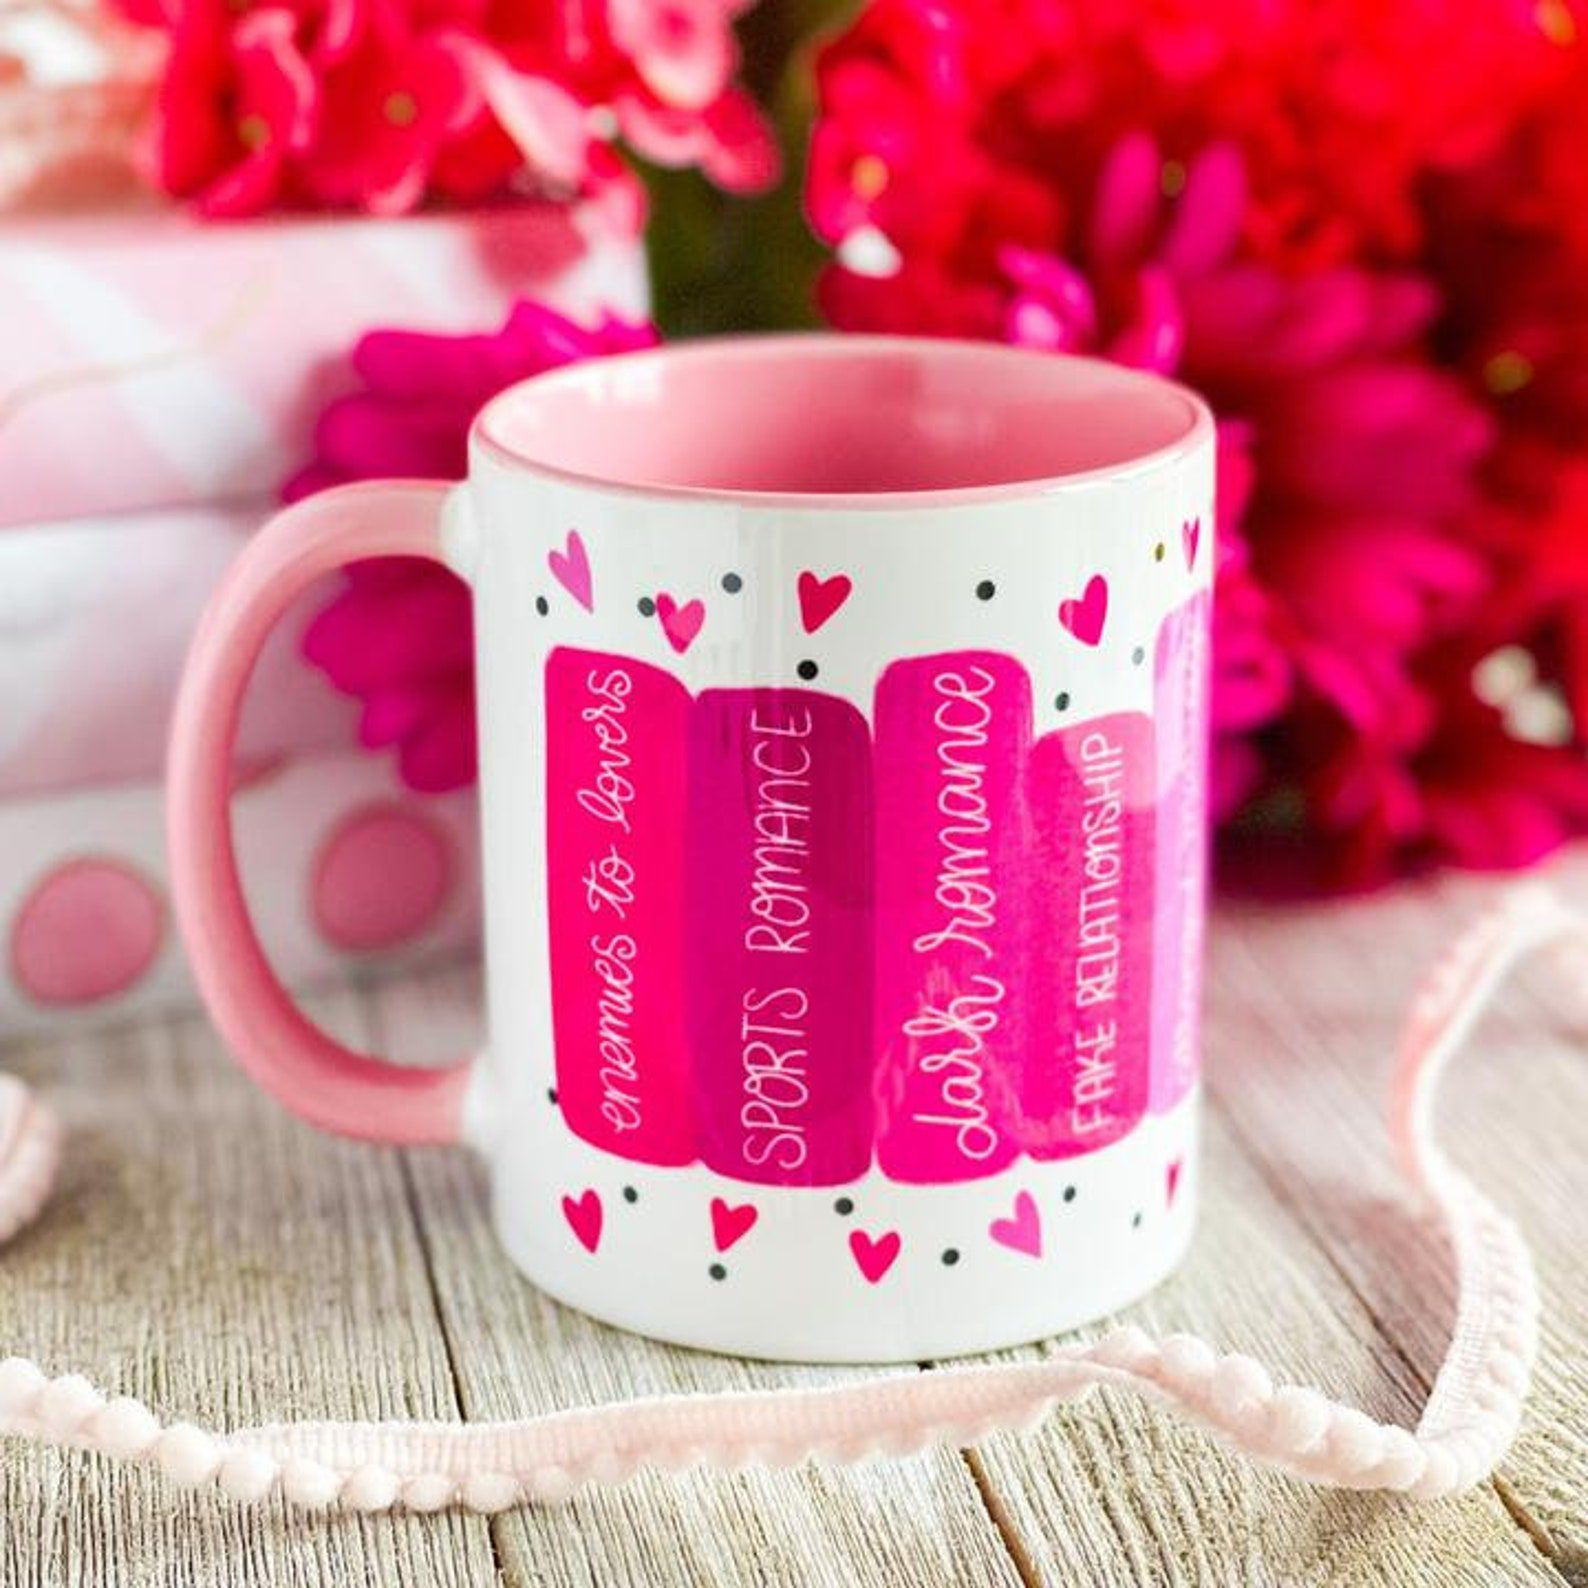 A white and pink mug featuring book spines with various romance tropes.